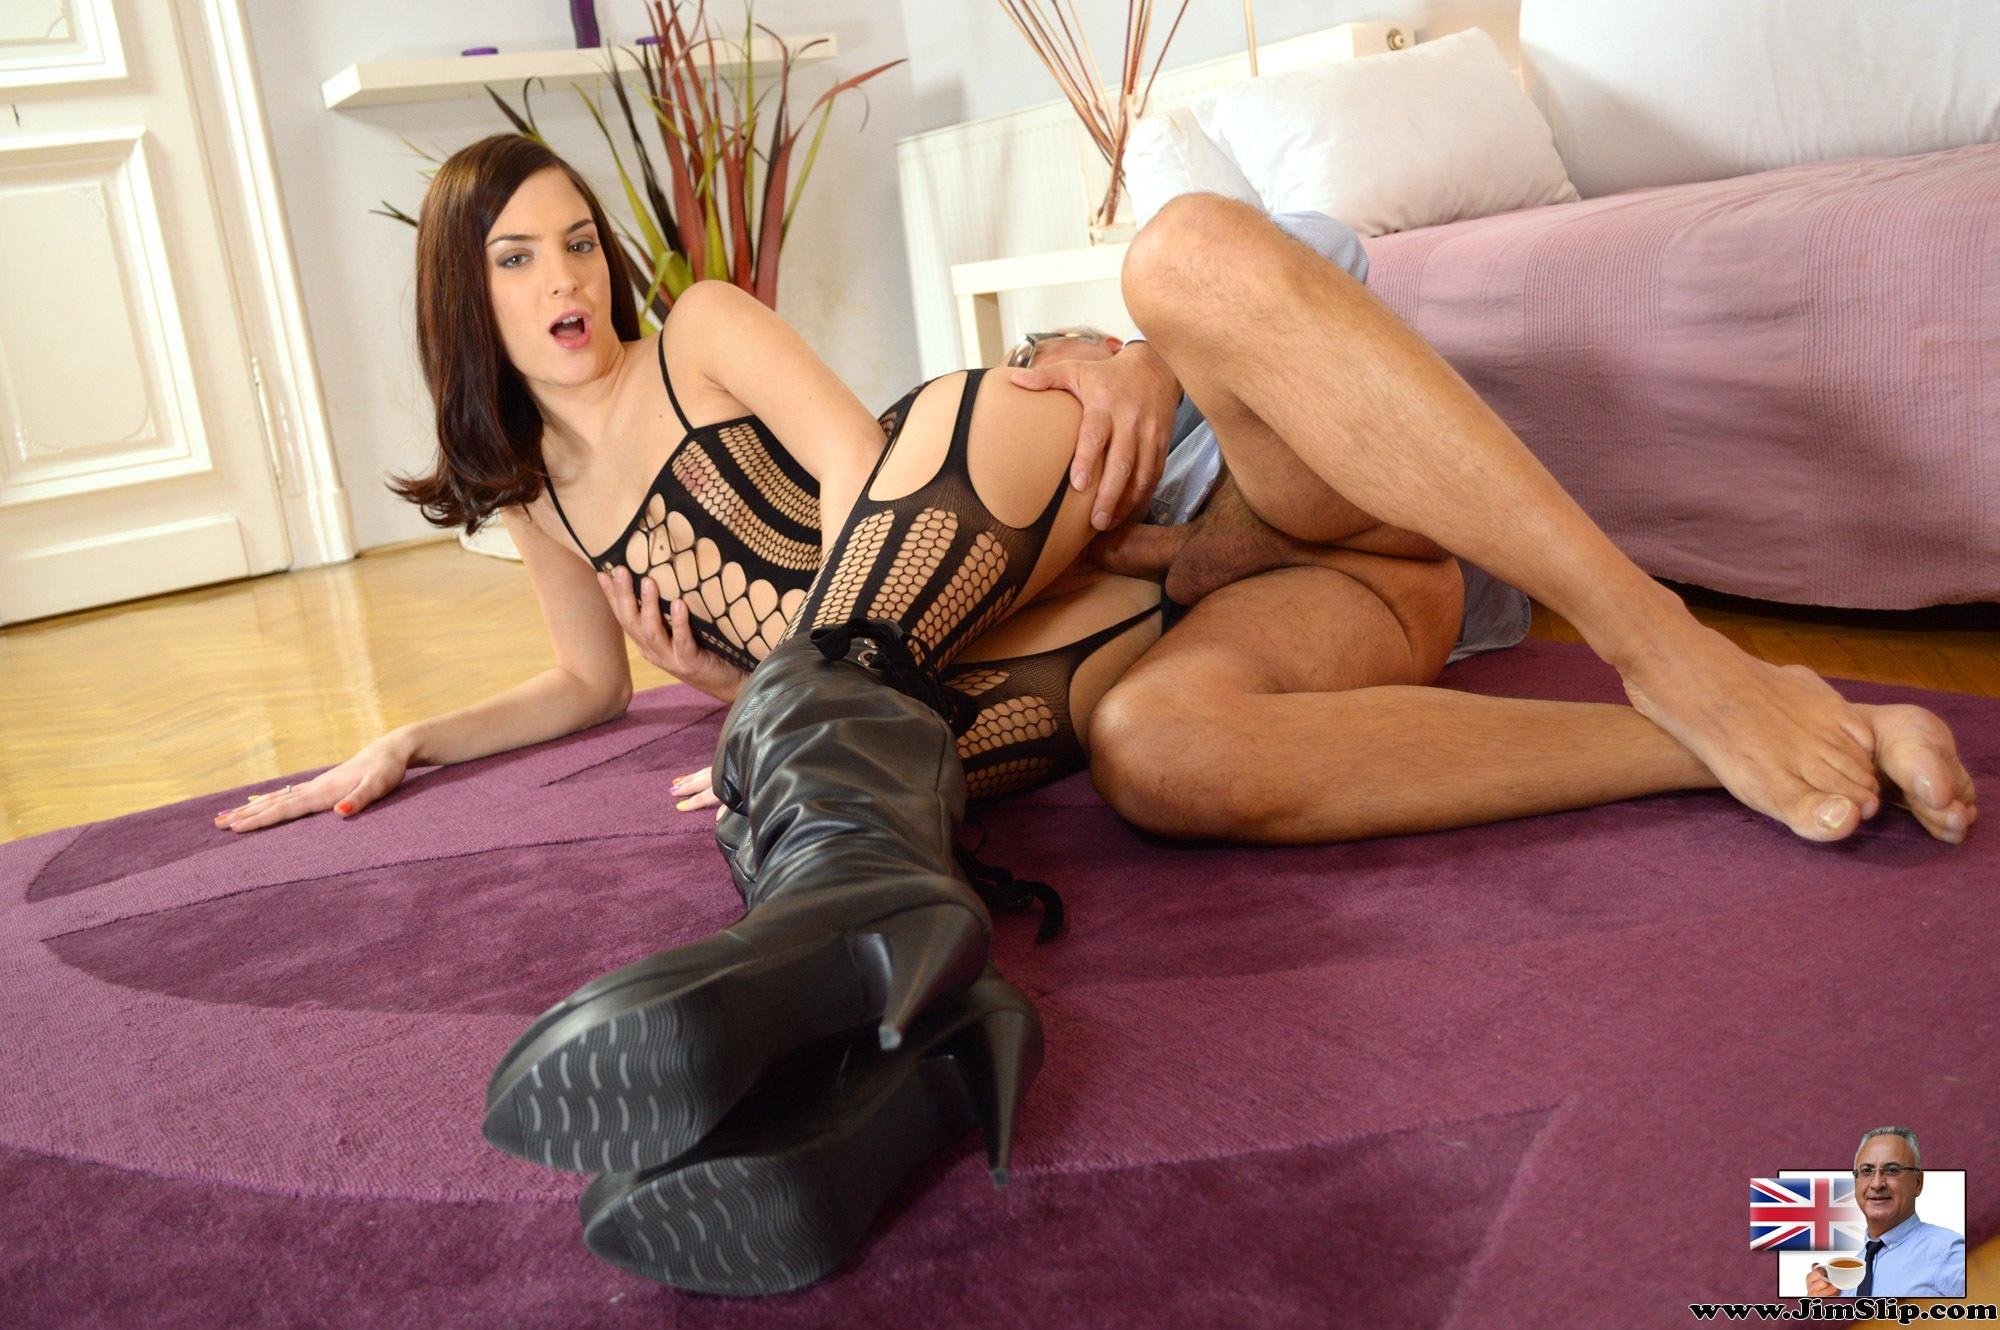 UK slut wearing Ripped Stockings is so horny